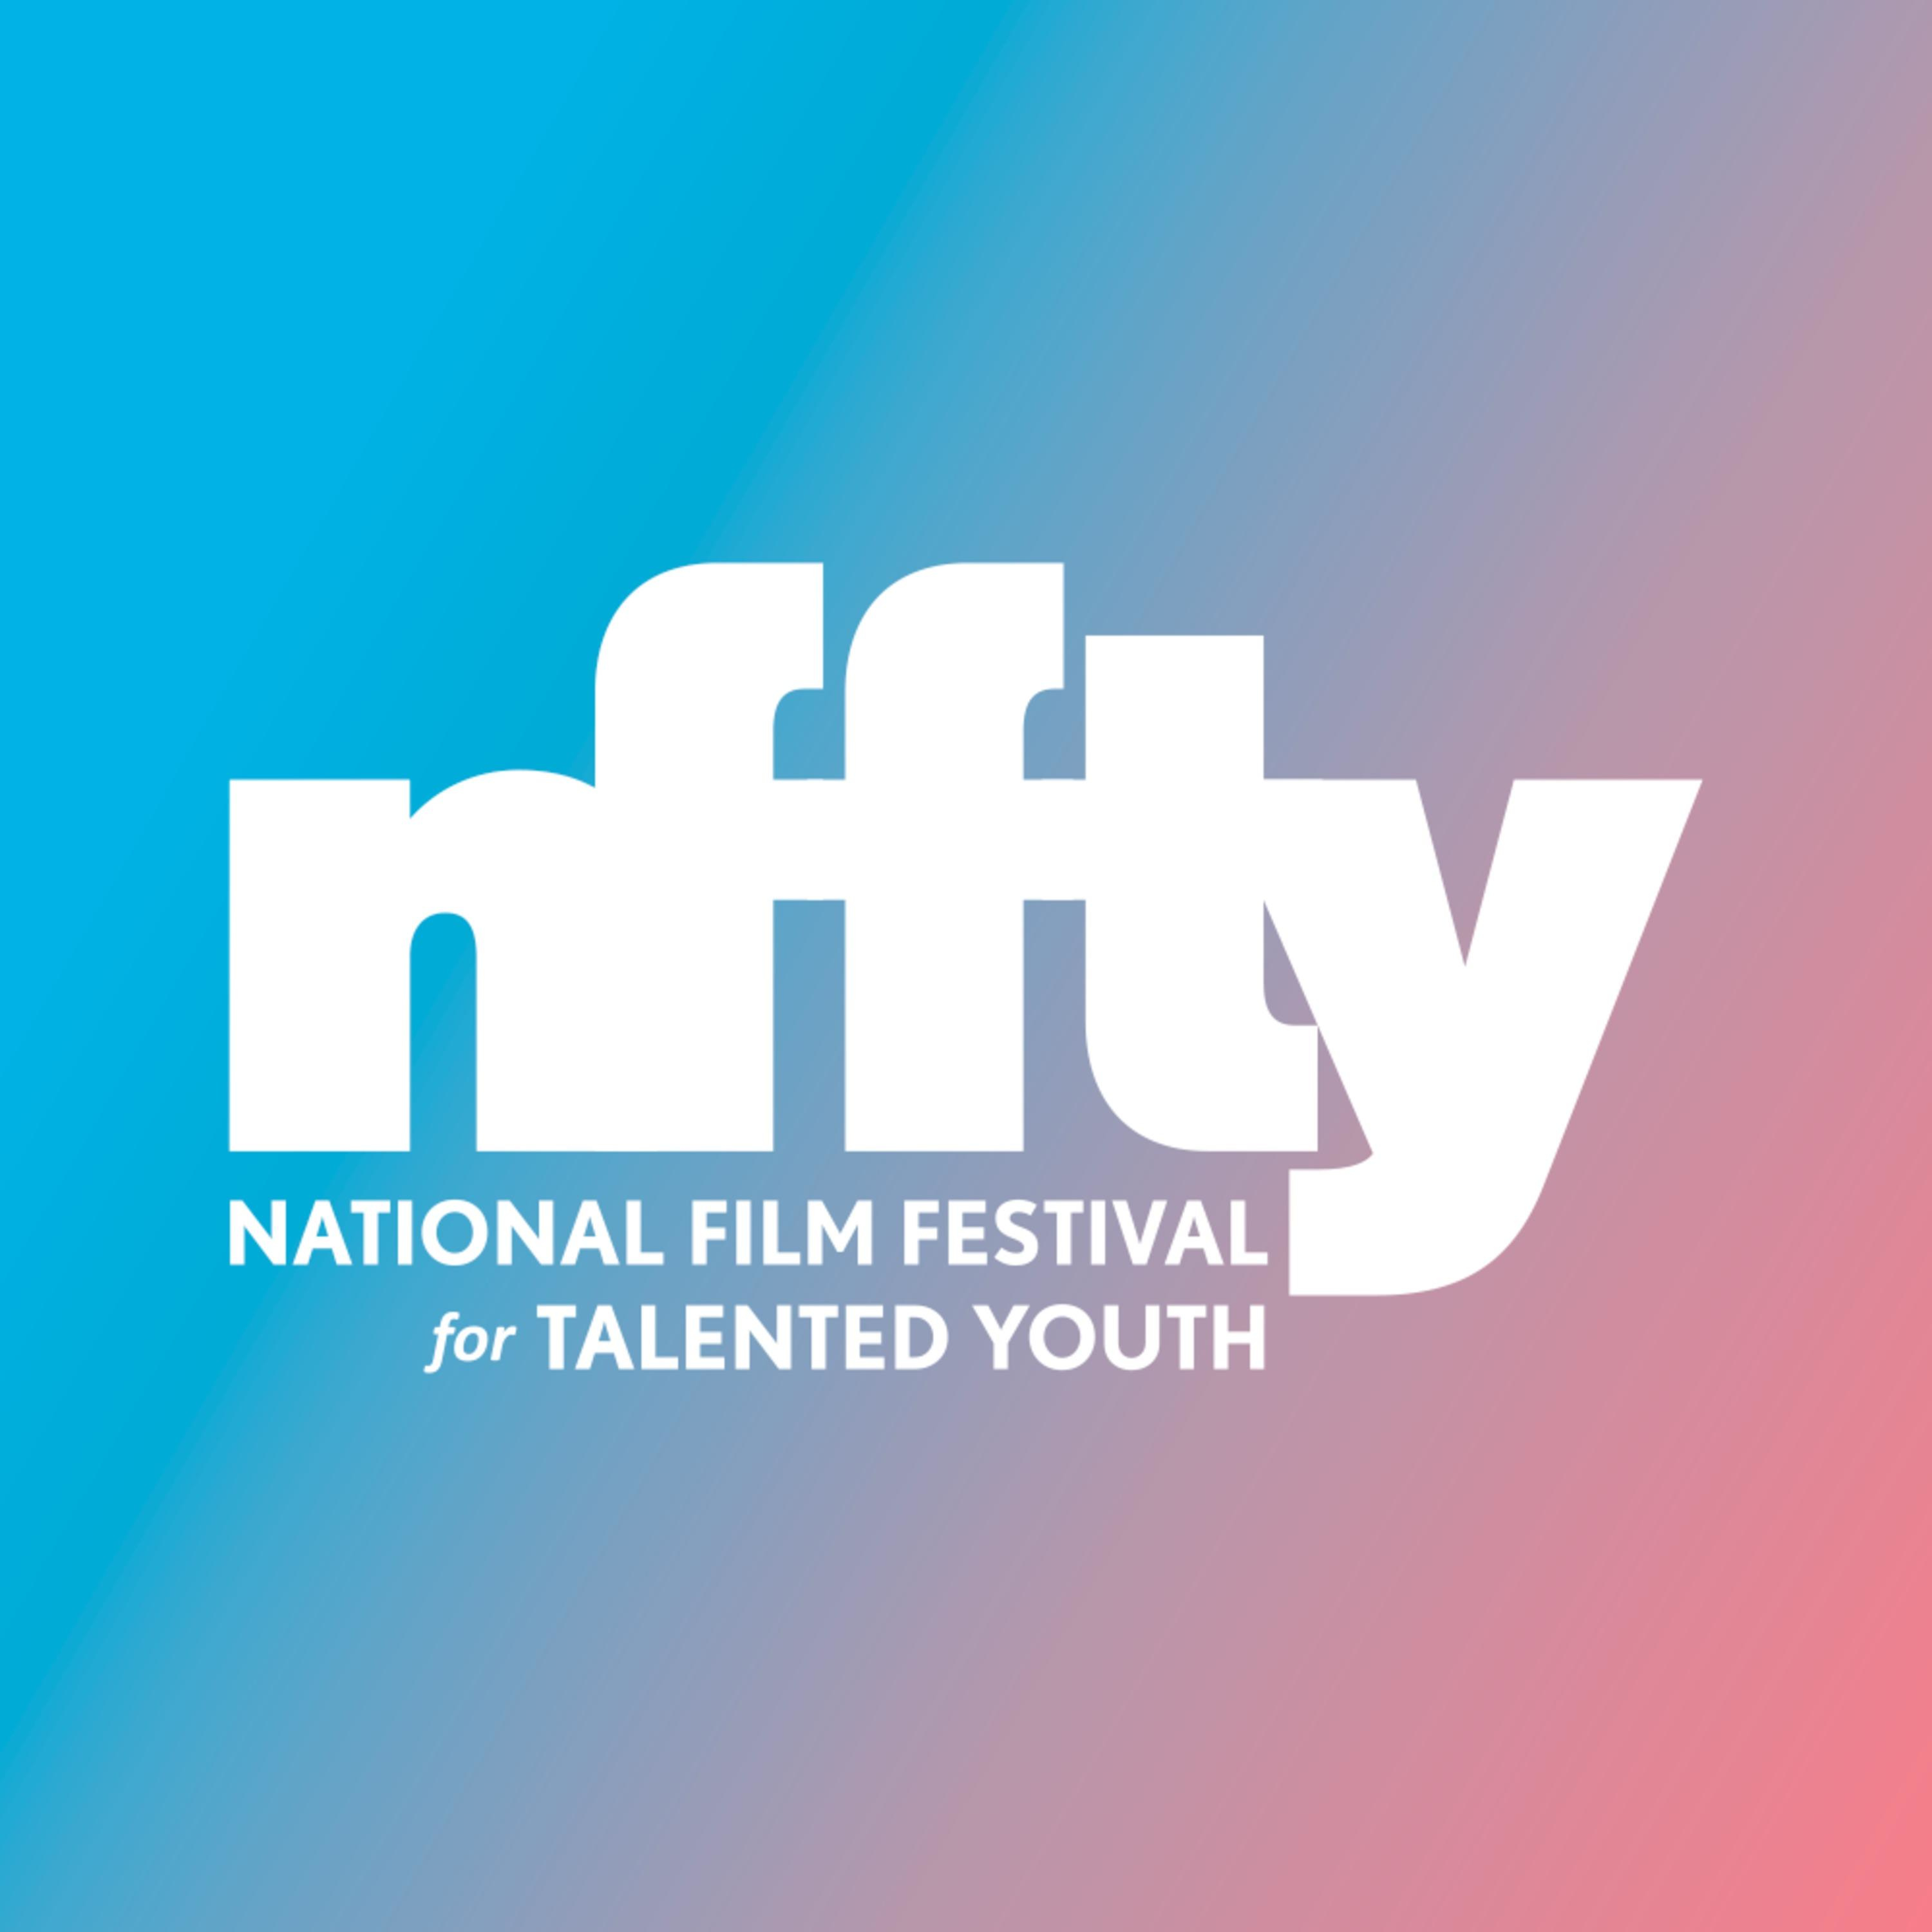 The NFFTY Podcast